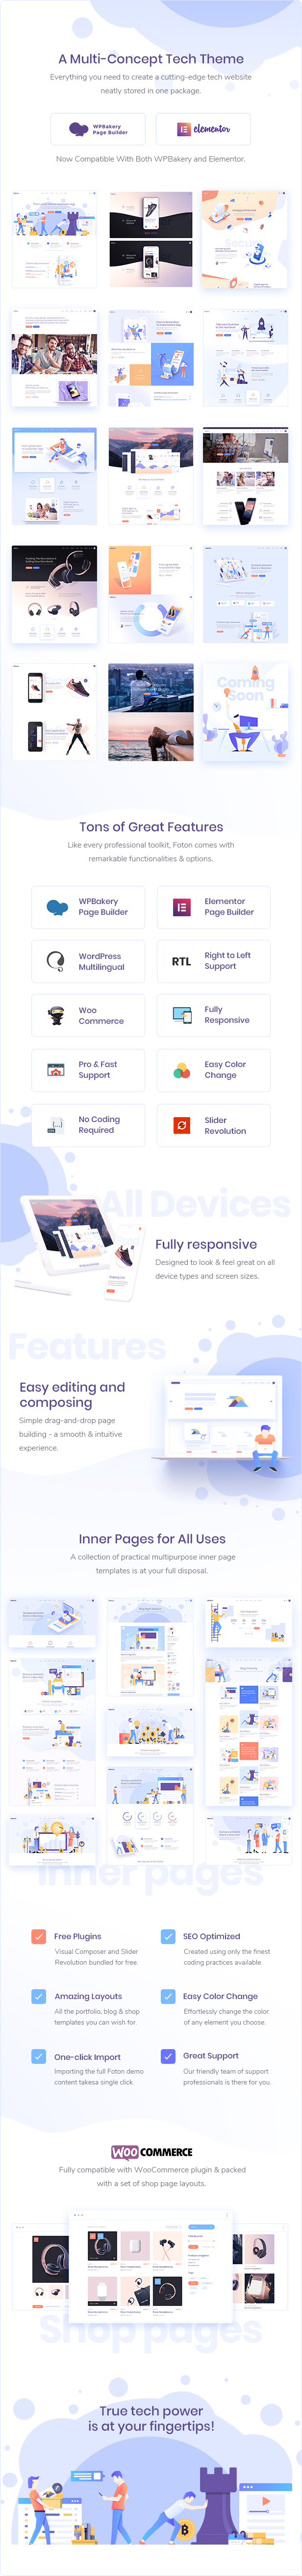 Foton - Software and App Landing Page Theme - 2